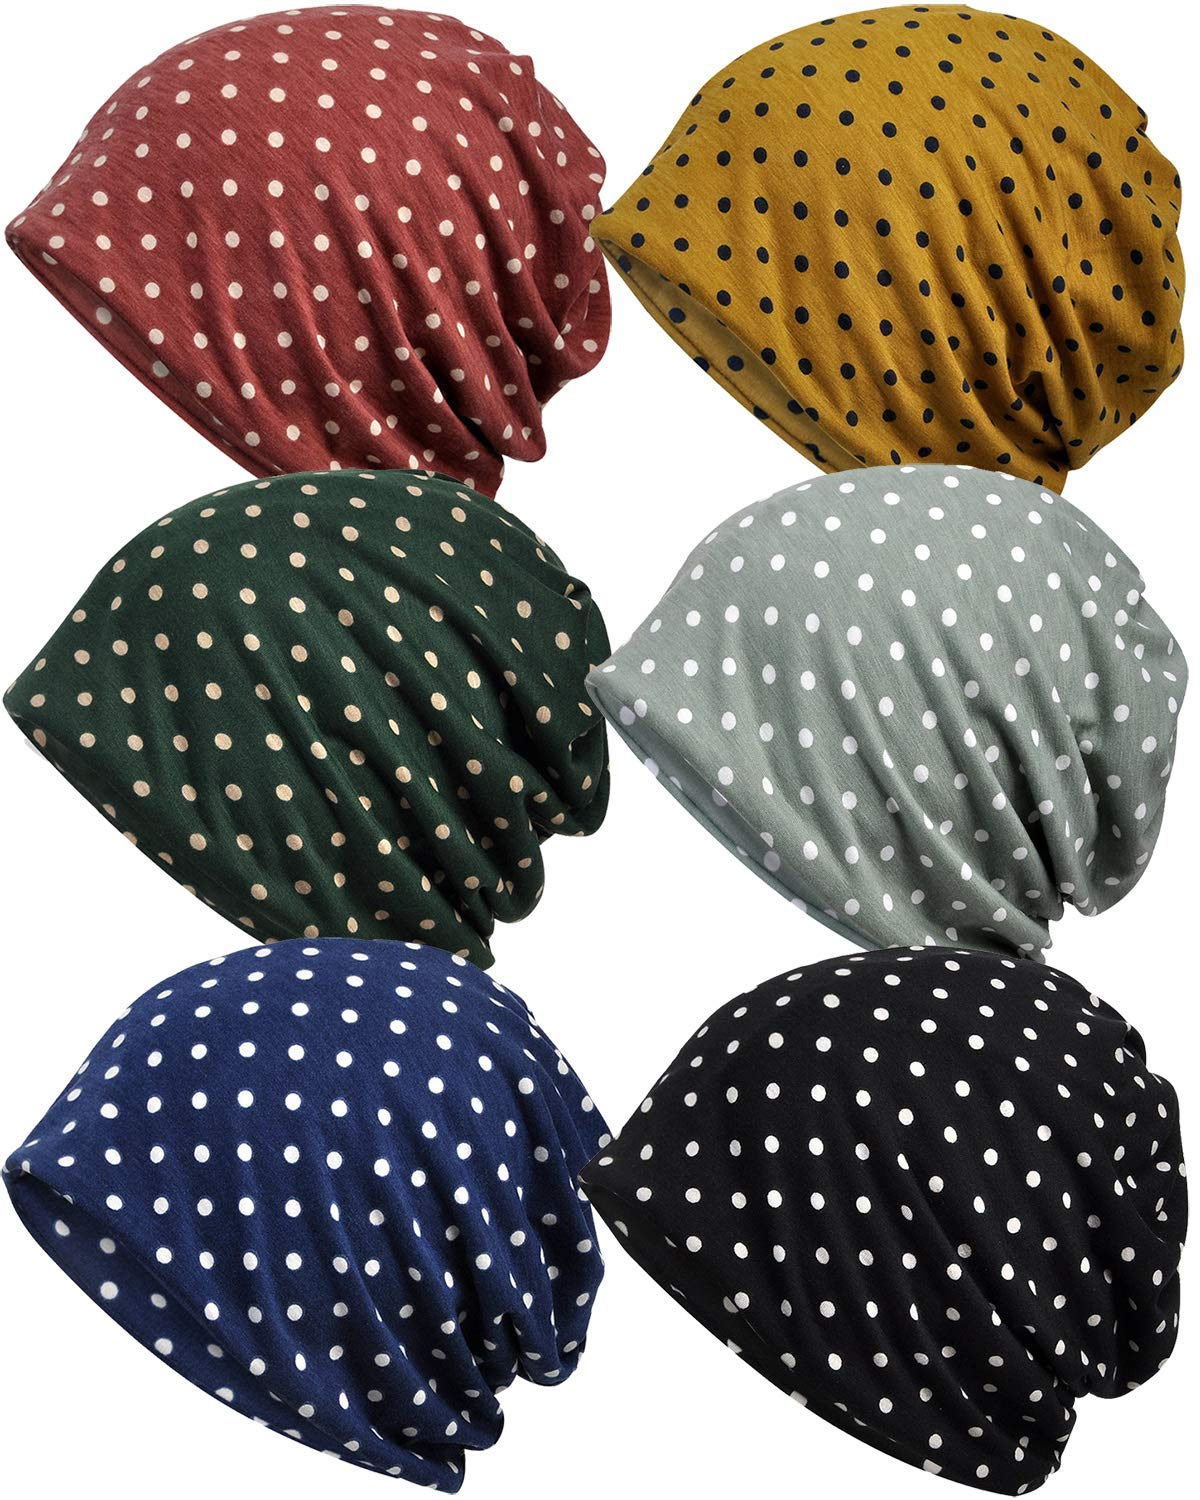 Ababalaya Women's Kinds of Lace/Floral/Print/Cotton Chemo Cap Hair Loss Beanie Nightcap Pack,Polka Dots-6 Pieces